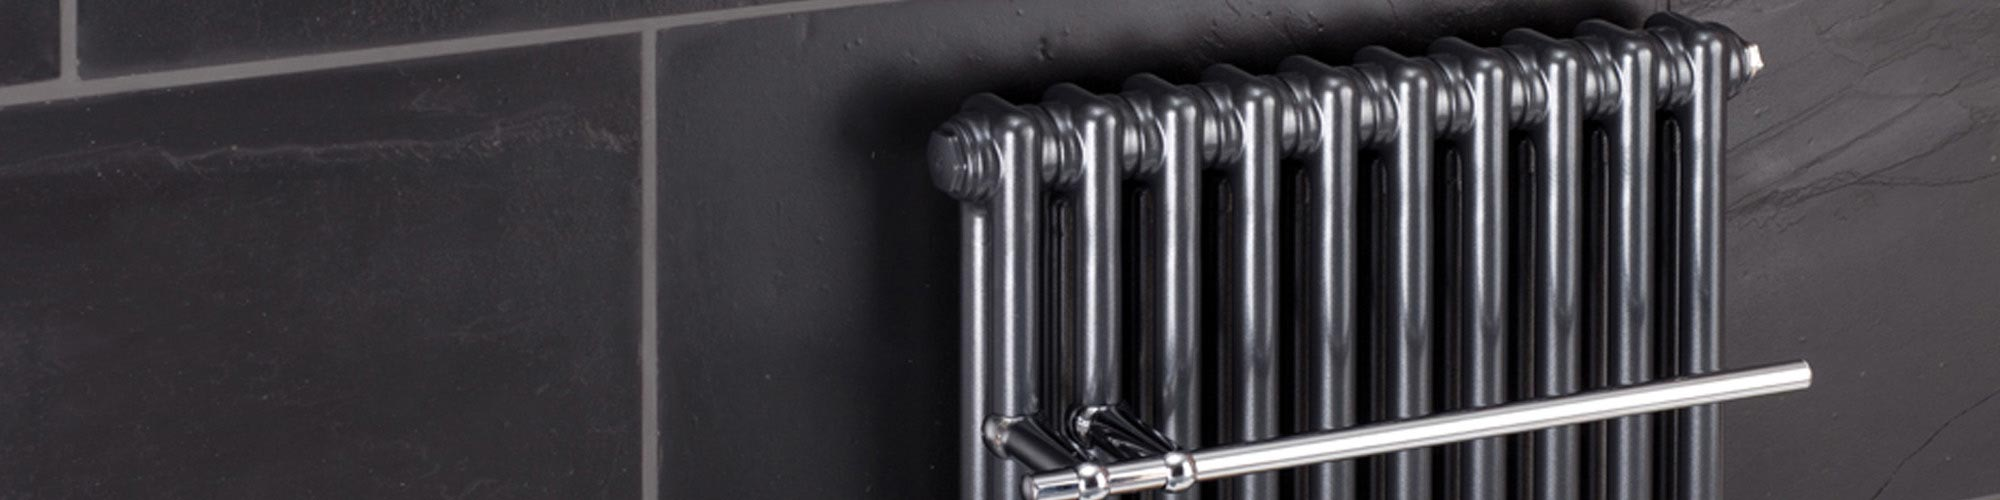 Kitchen Radiators by FCI London